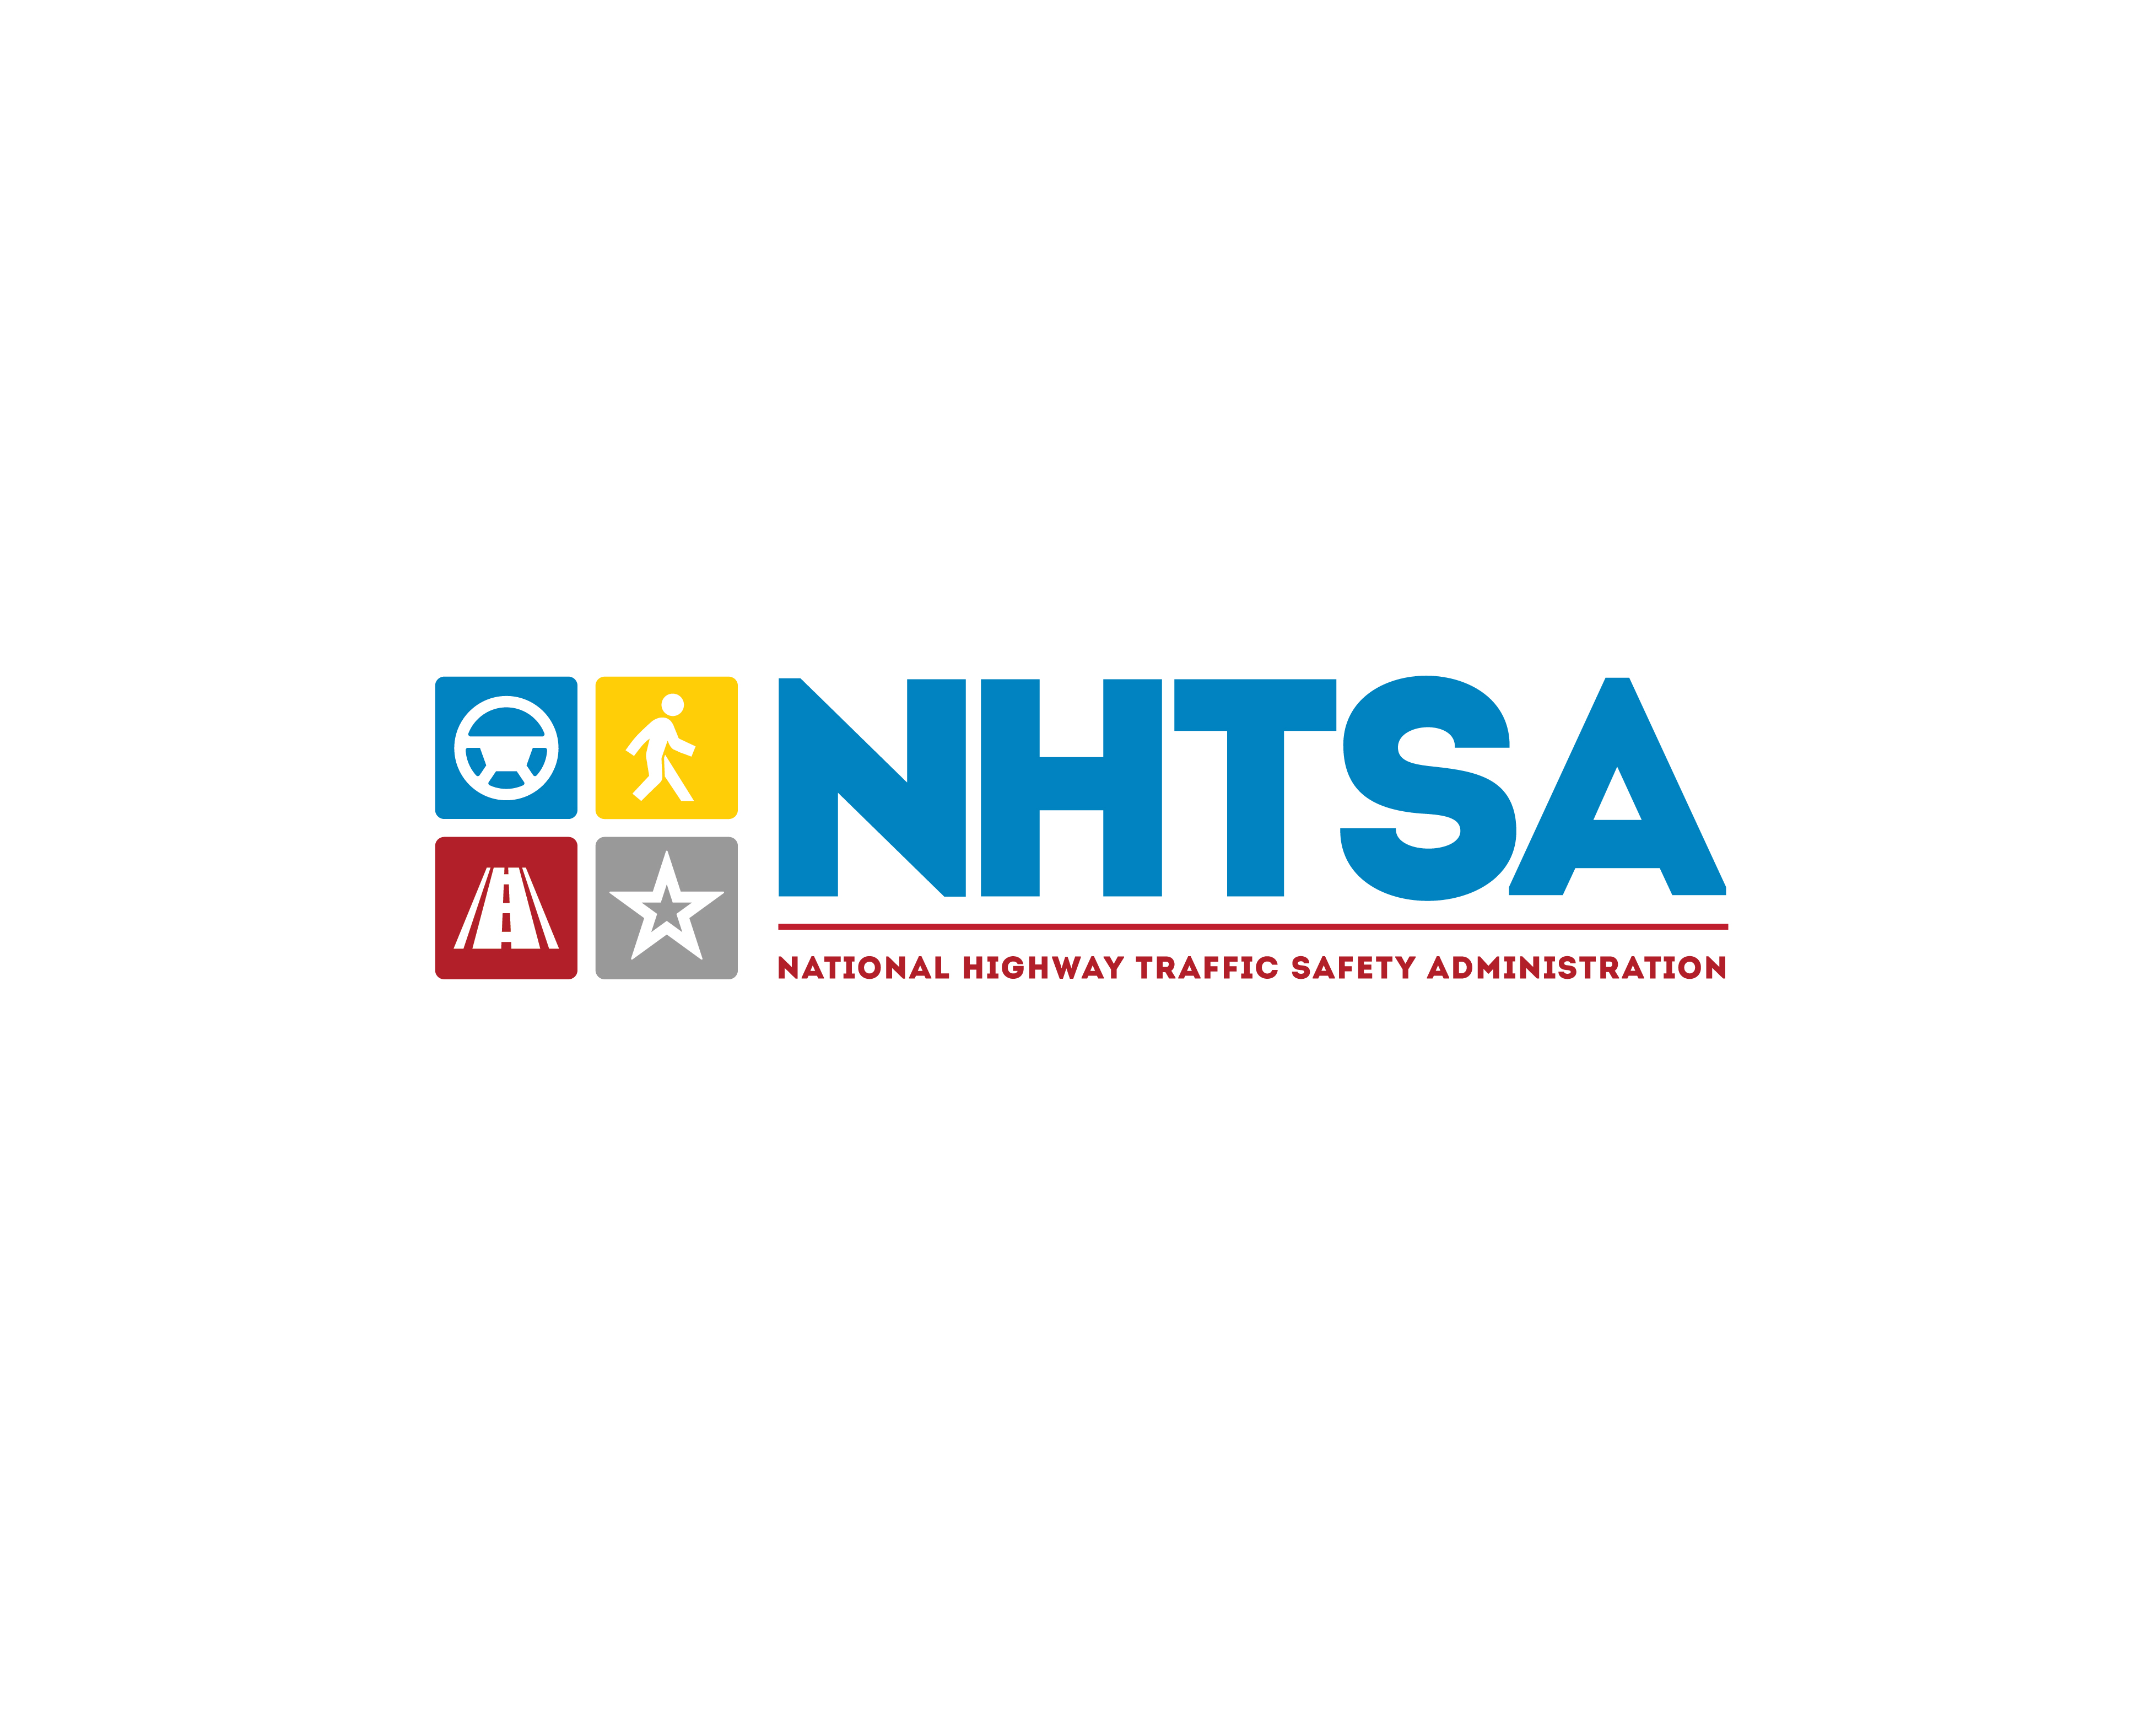 National Highway Traffic Safety Administration (NHTSA), USA Logo